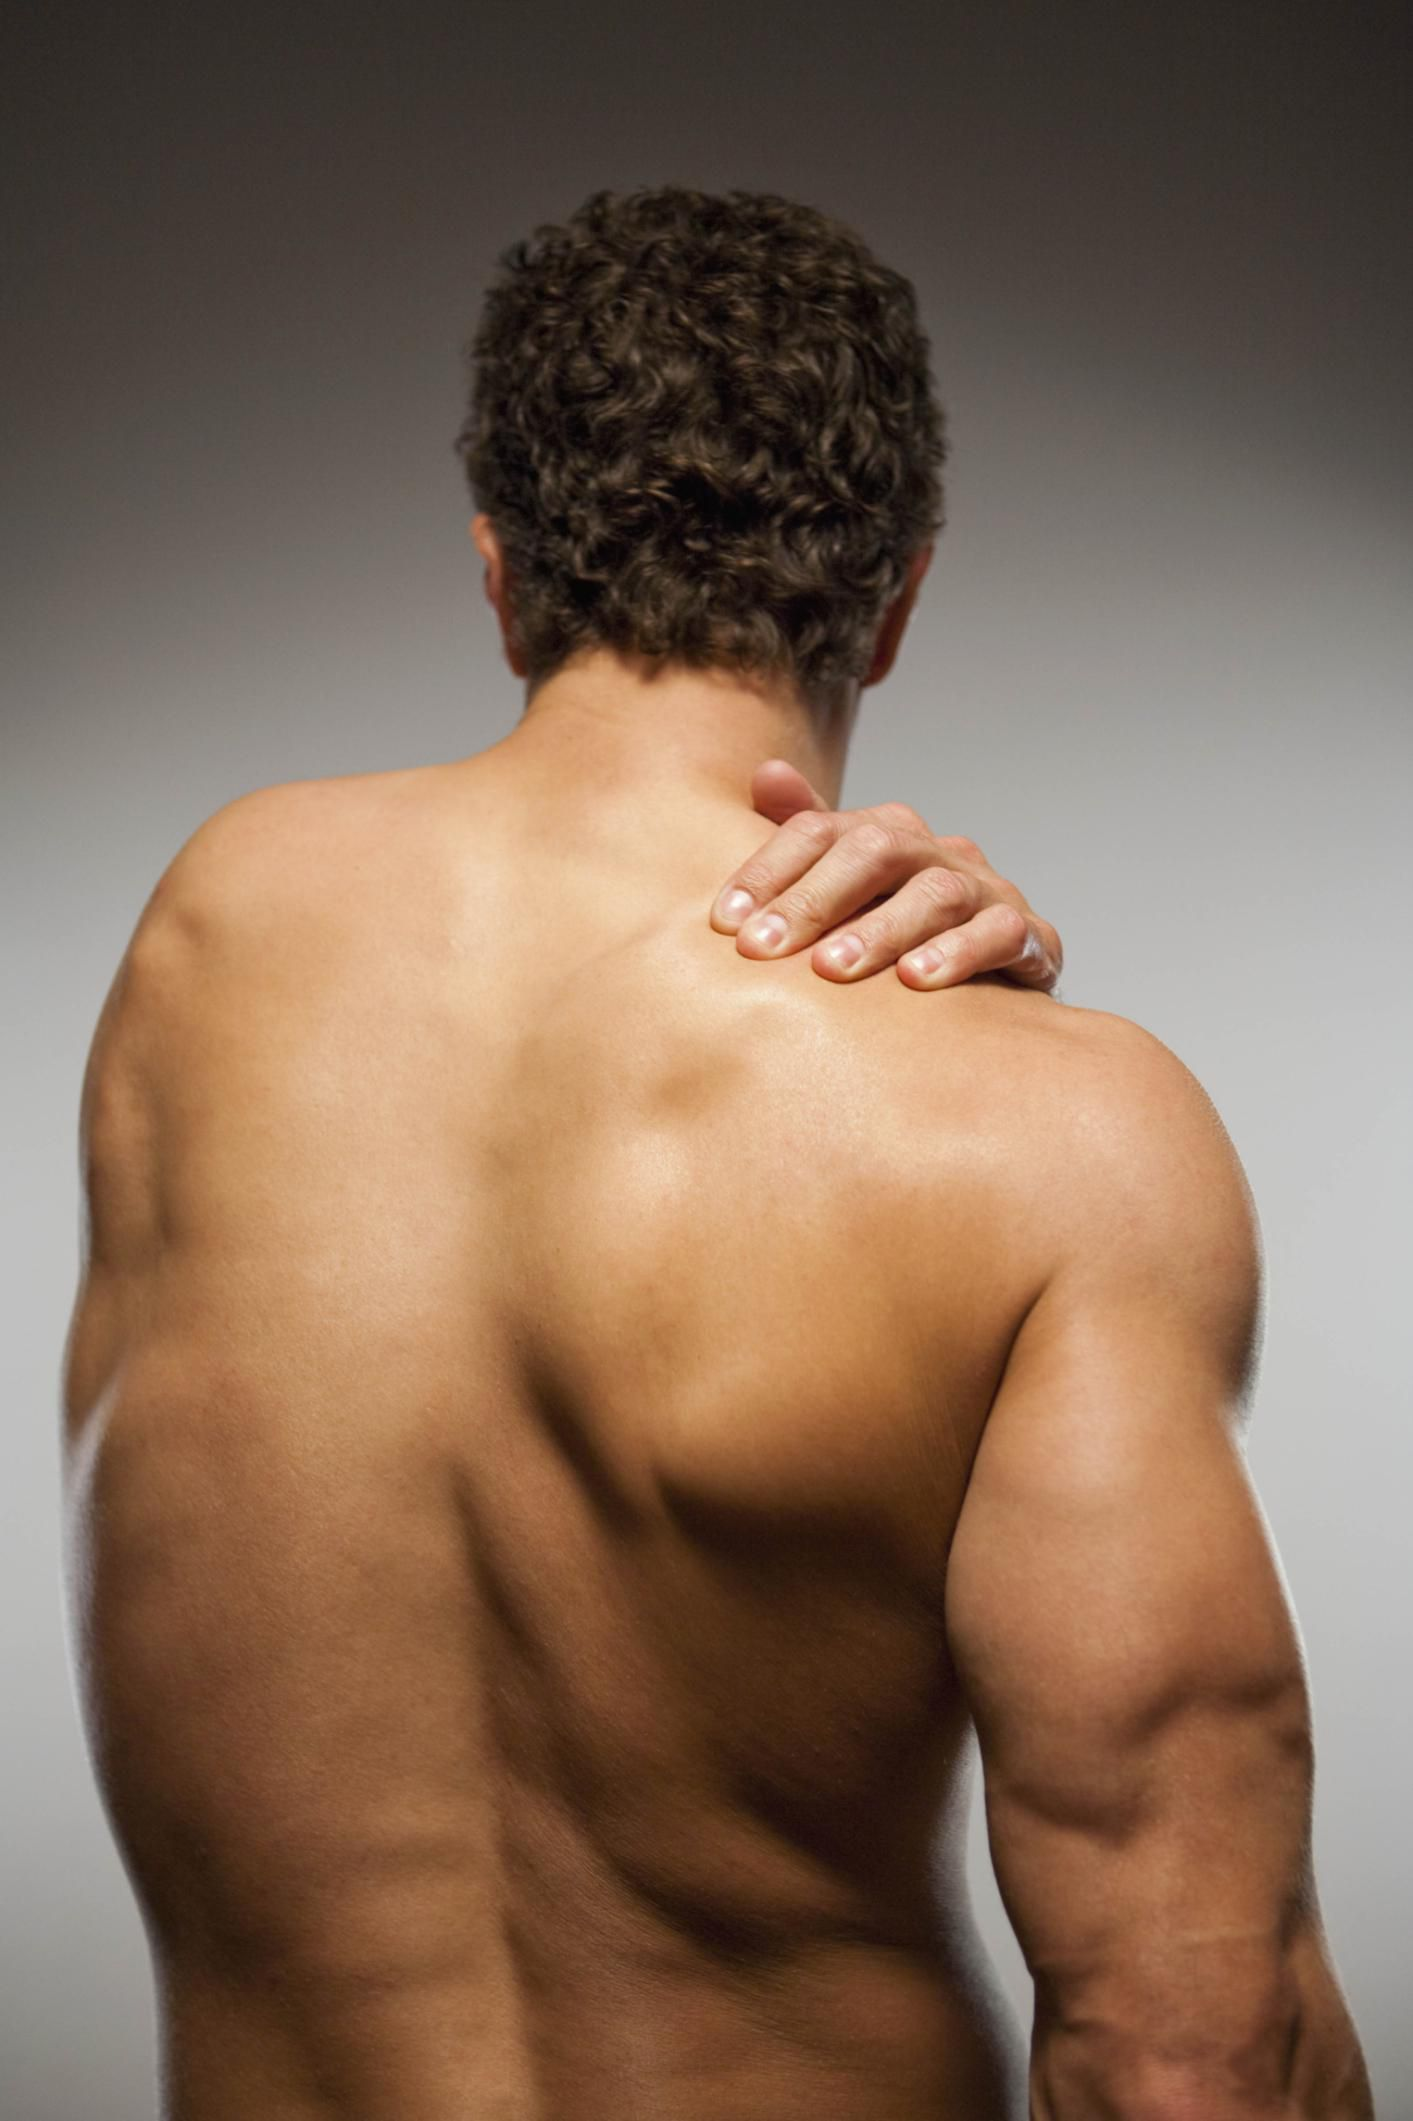 Muscle Pain: Causes, Treatment, and When to See a Doctor